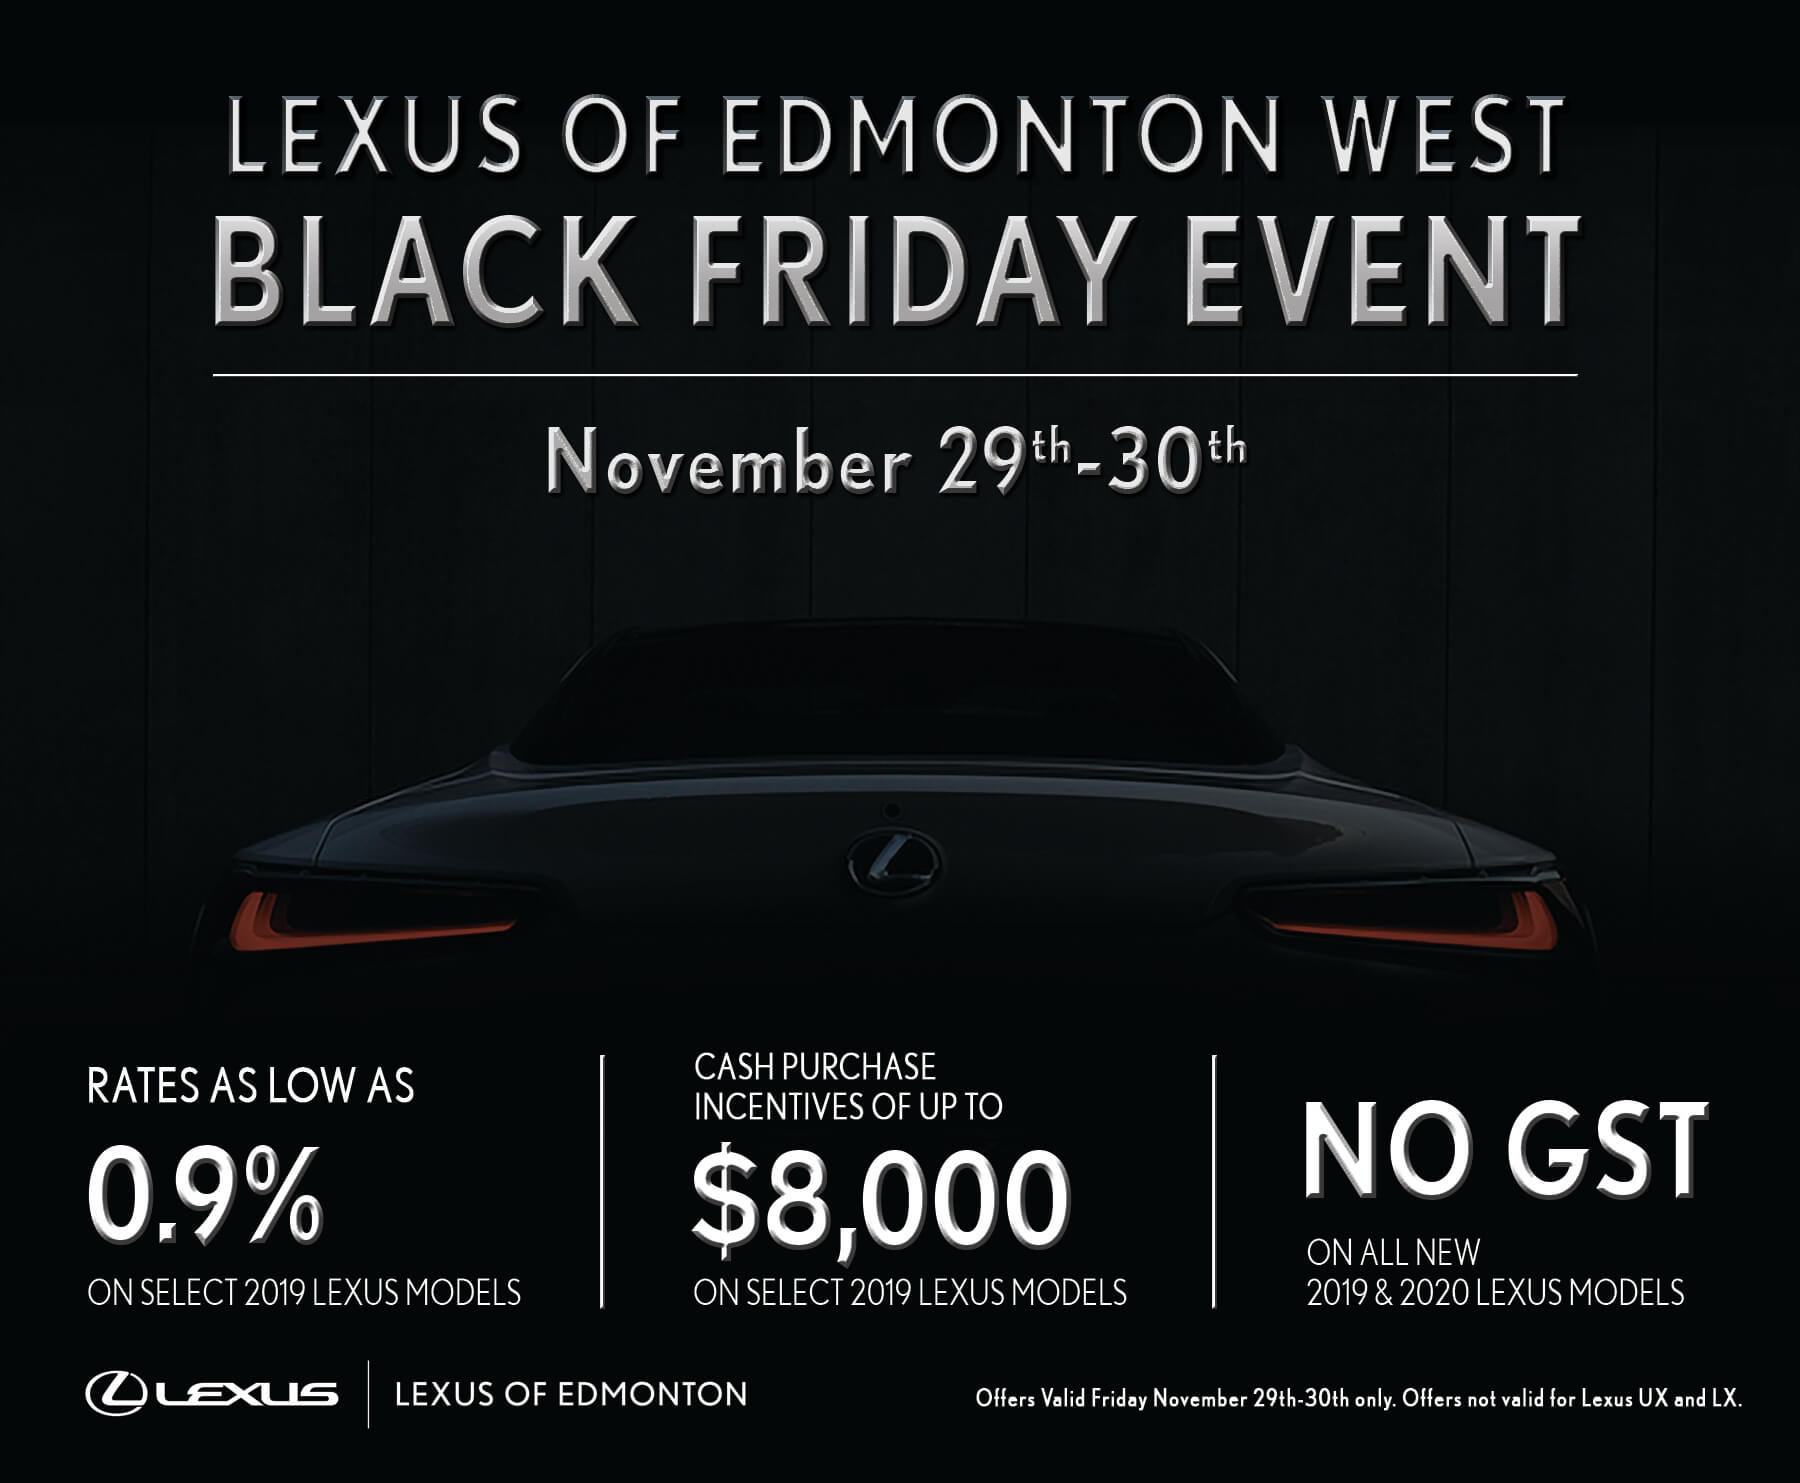 Black Friday Event Details at Lexus of Edmonton